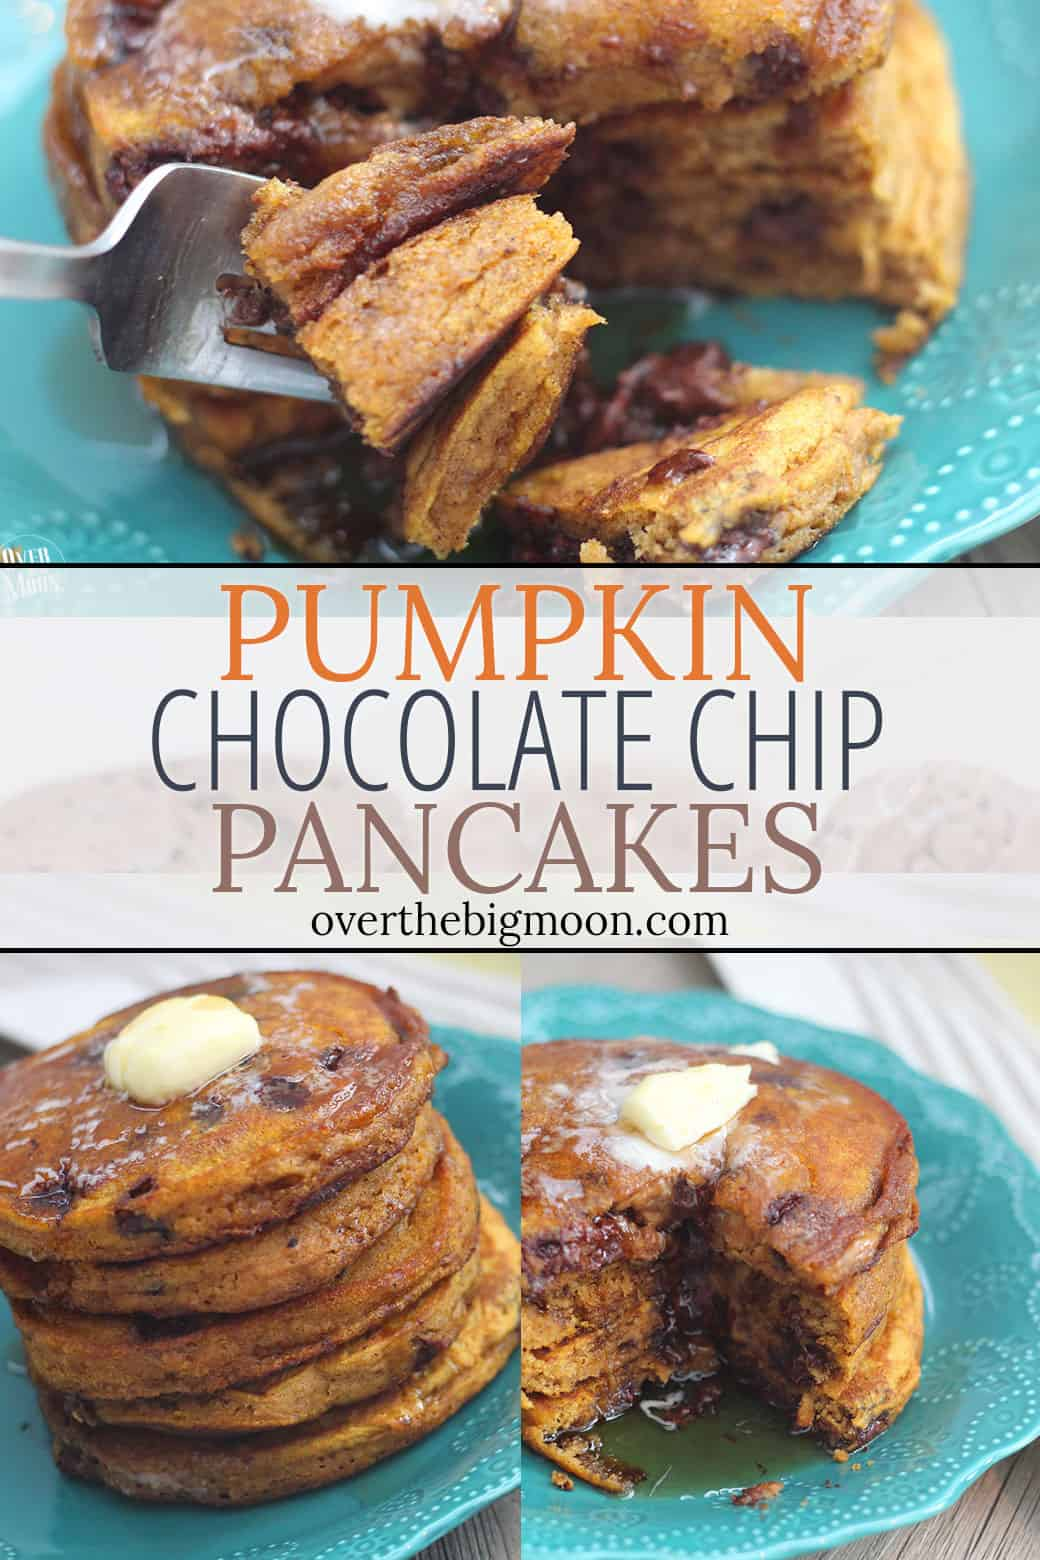 Pumpkin Chocolate Chip Pancakes - the perfect Fall breakfast! From overthebigmoon.com!